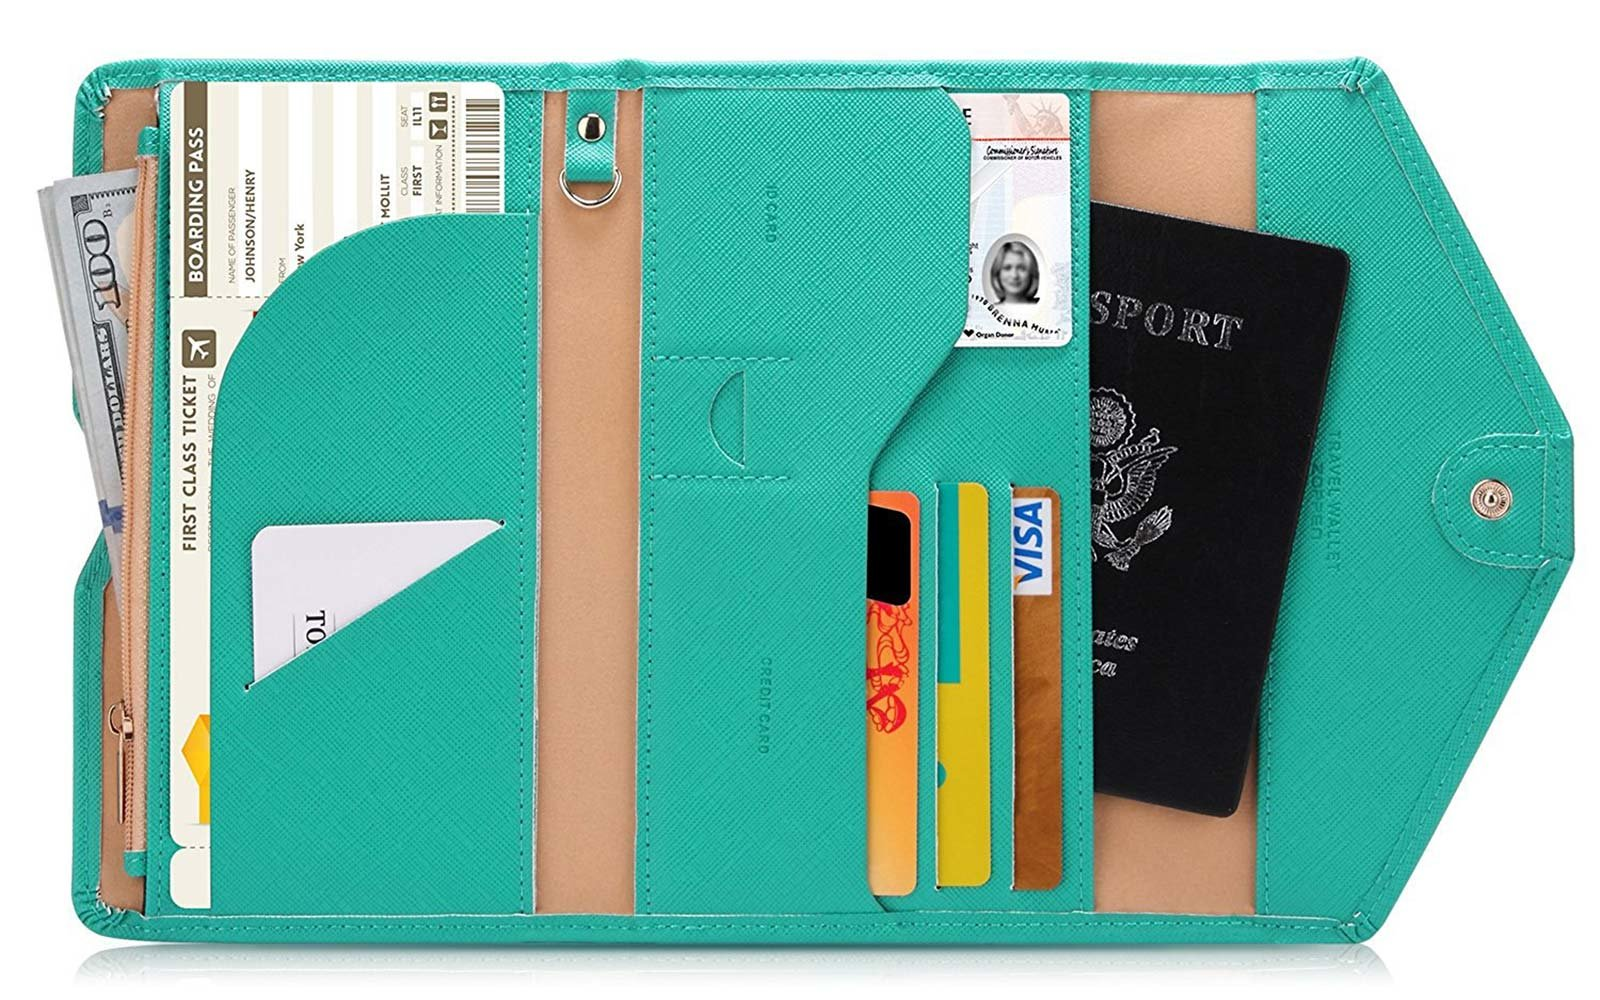 Zoppen Passport Wallet Gift Guide Under $25